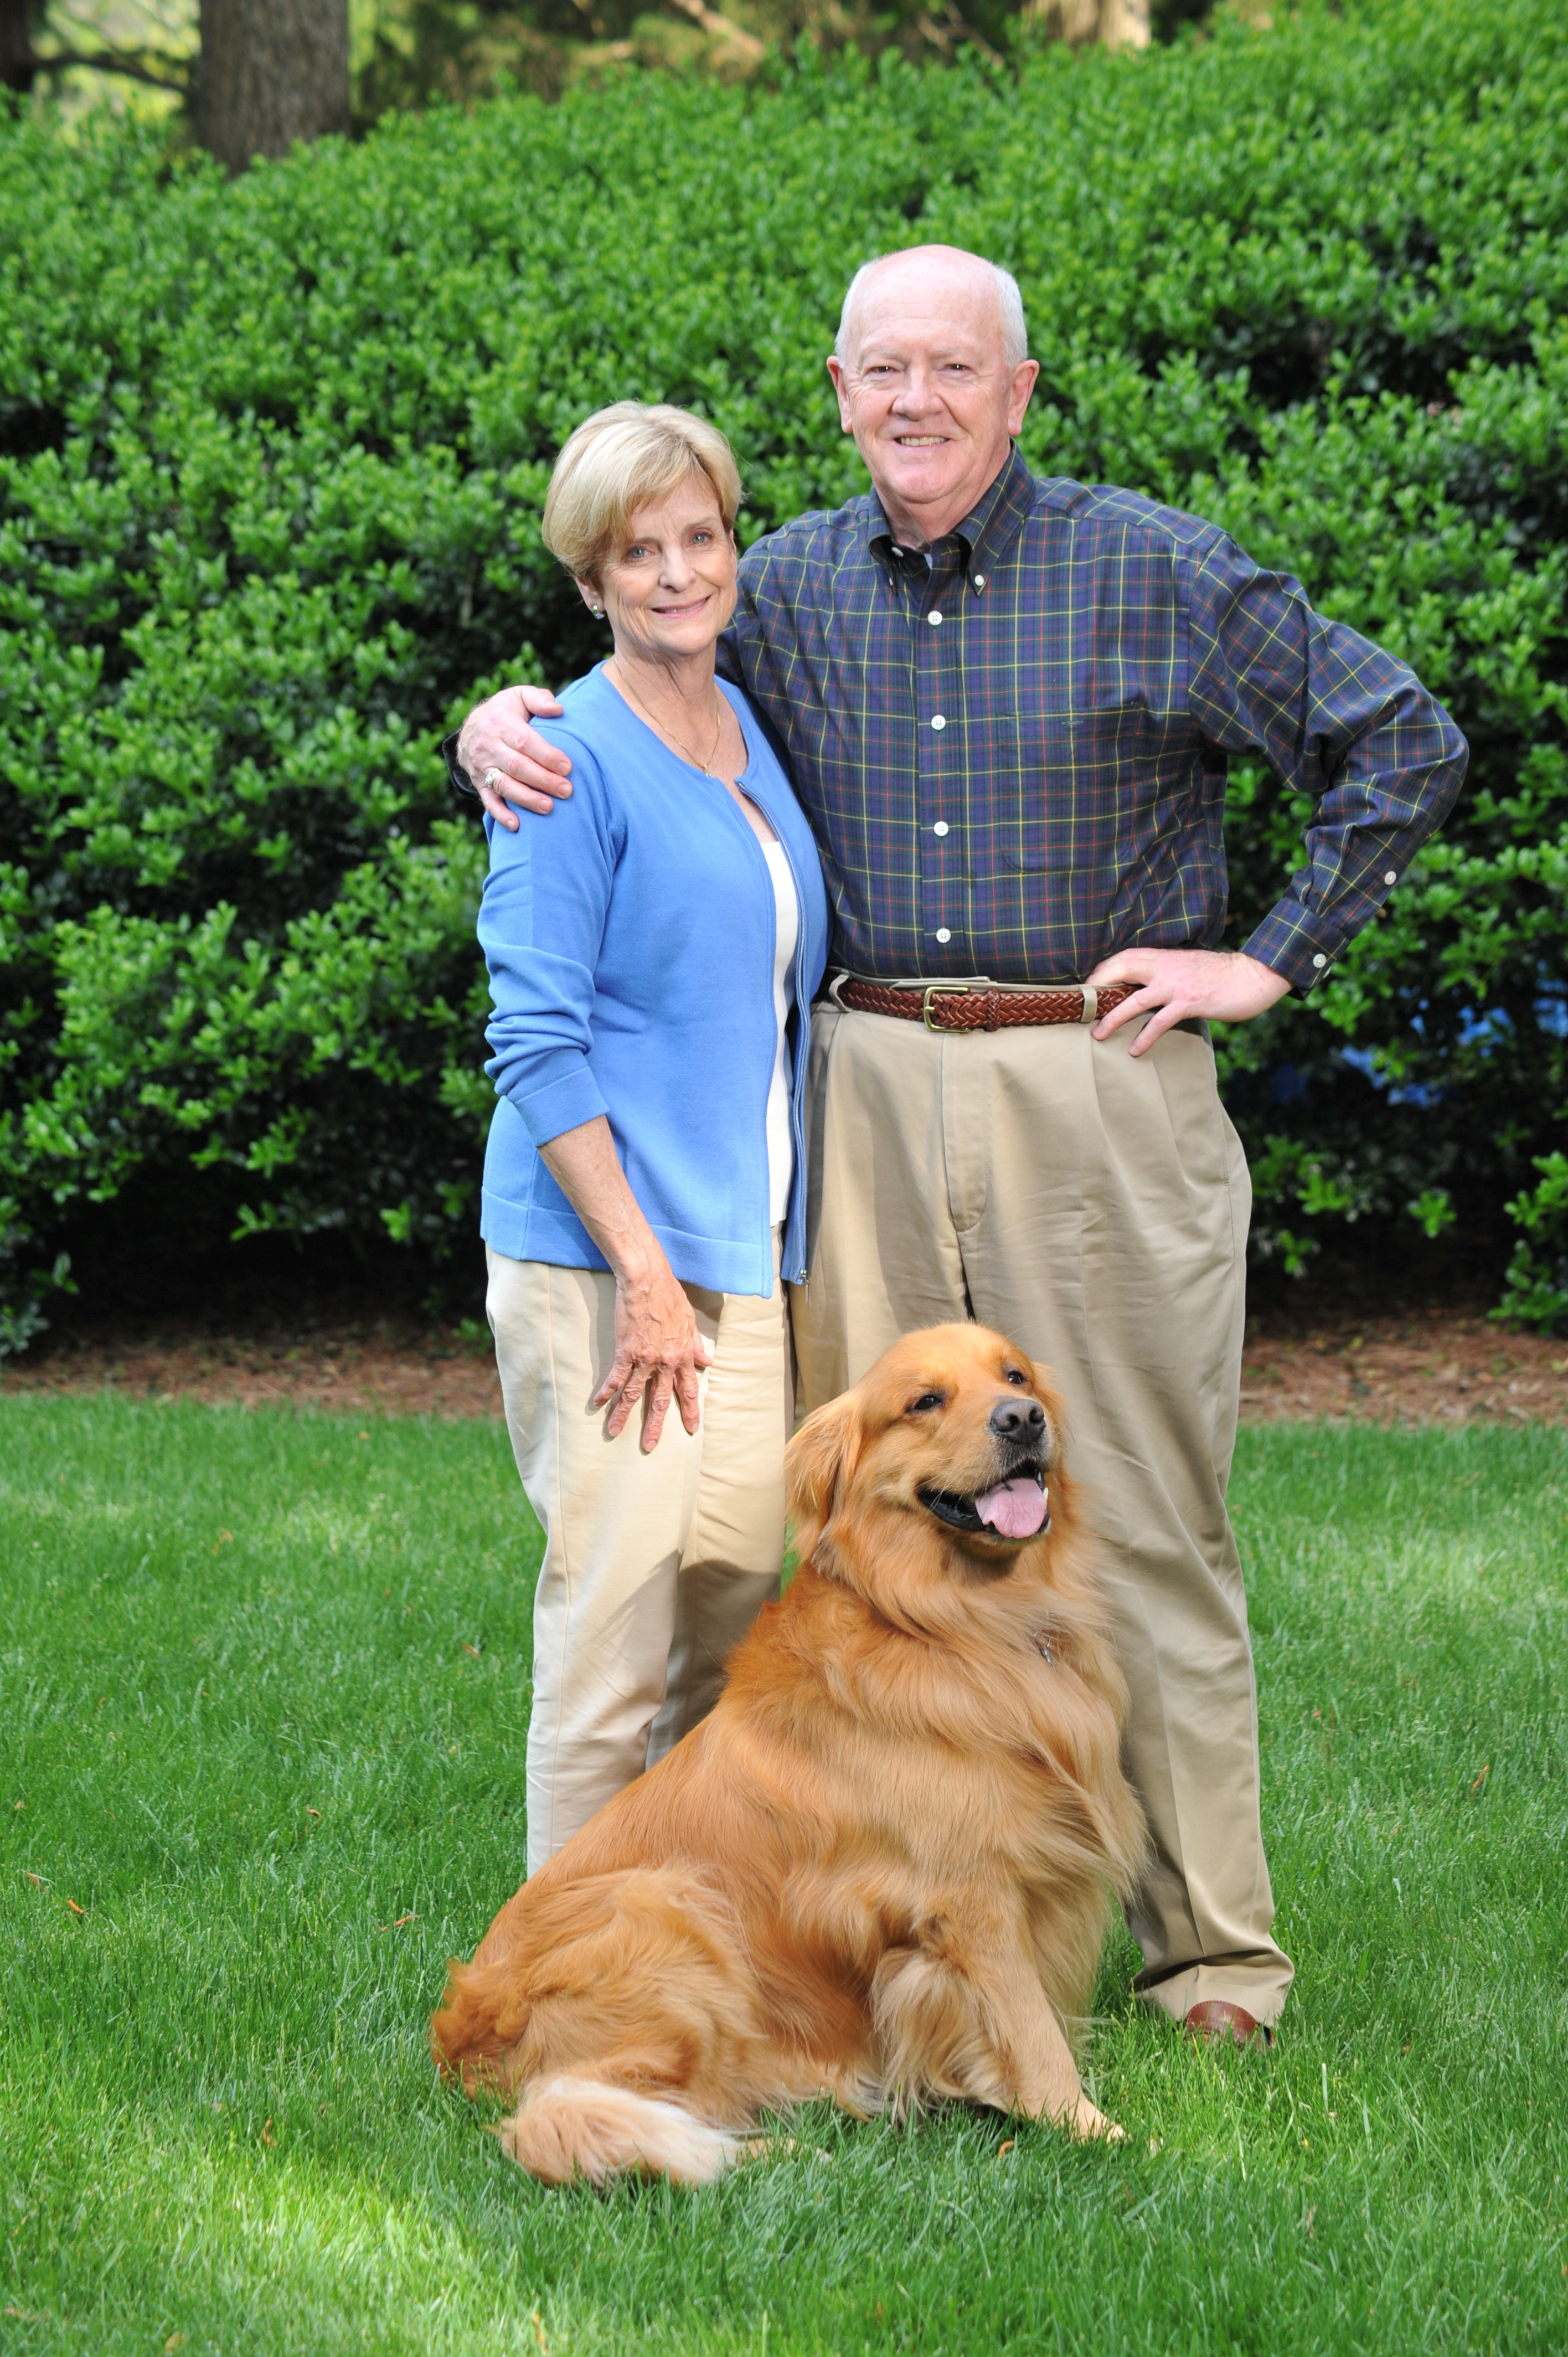 Fred and Karen Whyte pictured with their golden retriever, Keeper.